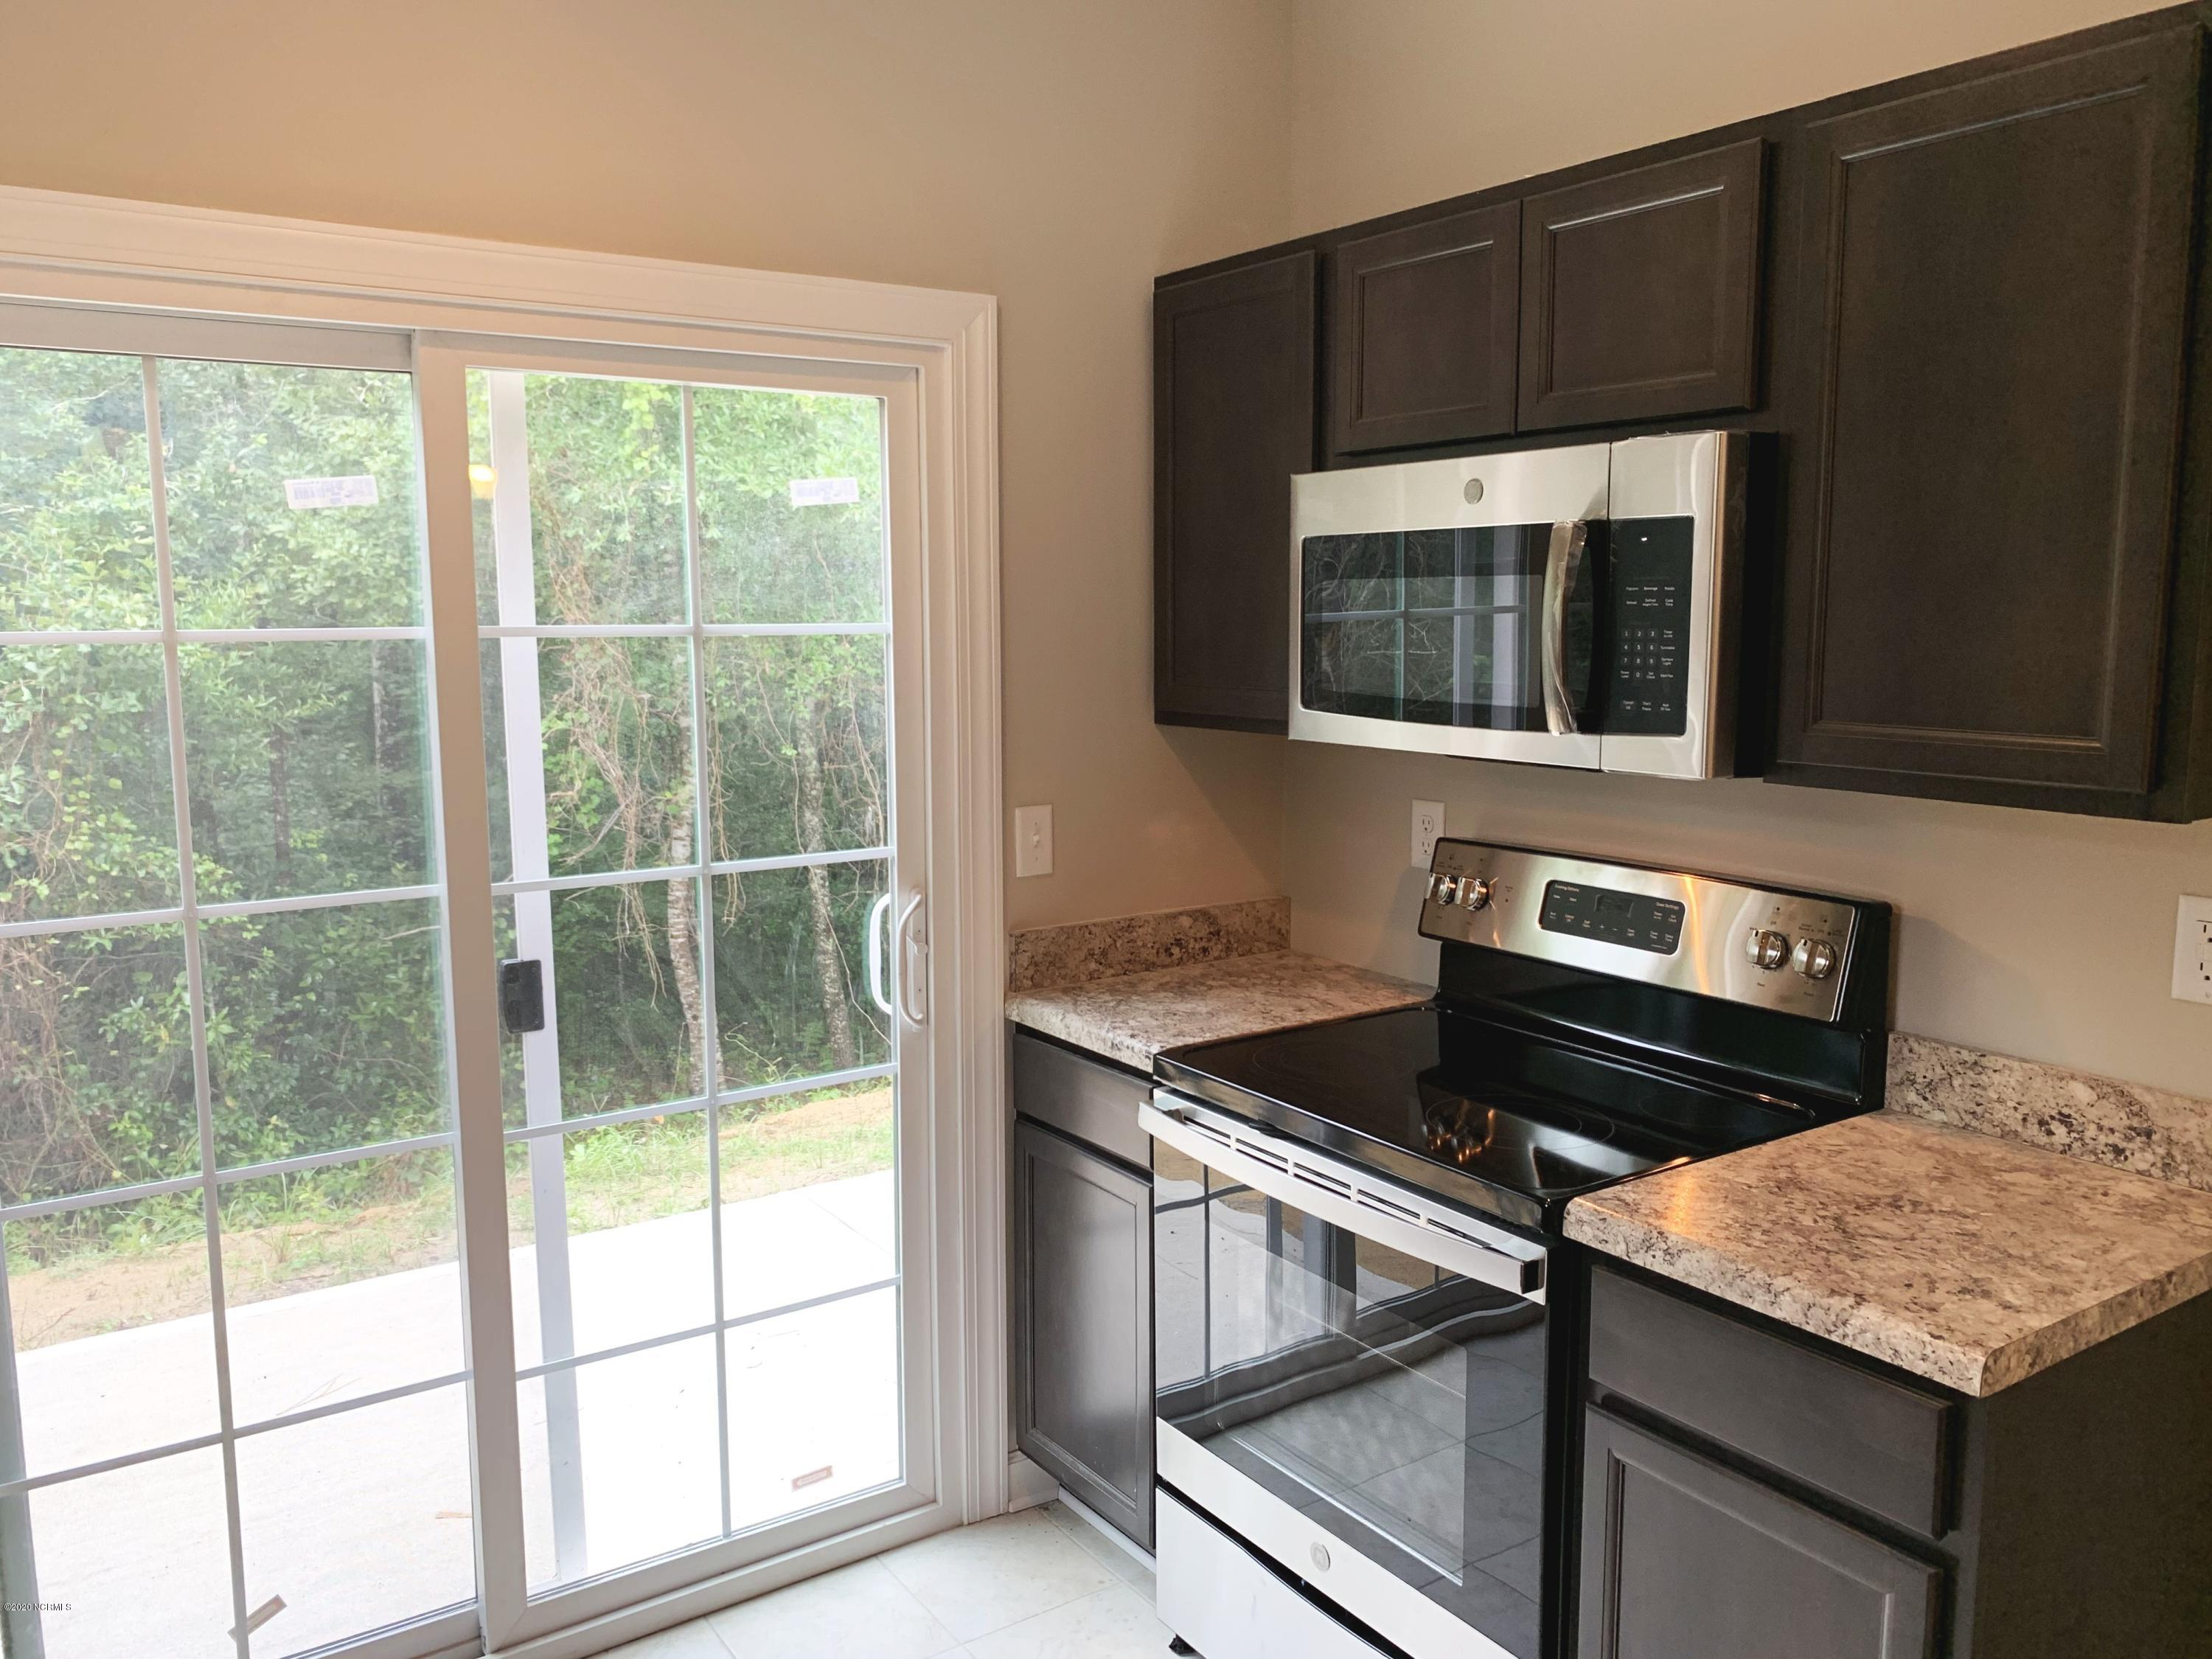 9326 Straightway Drive, Leland, North Carolina 28451, 3 Bedrooms Bedrooms, 6 Rooms Rooms,2 BathroomsBathrooms,Single family residence,For sale,Straightway,100191051